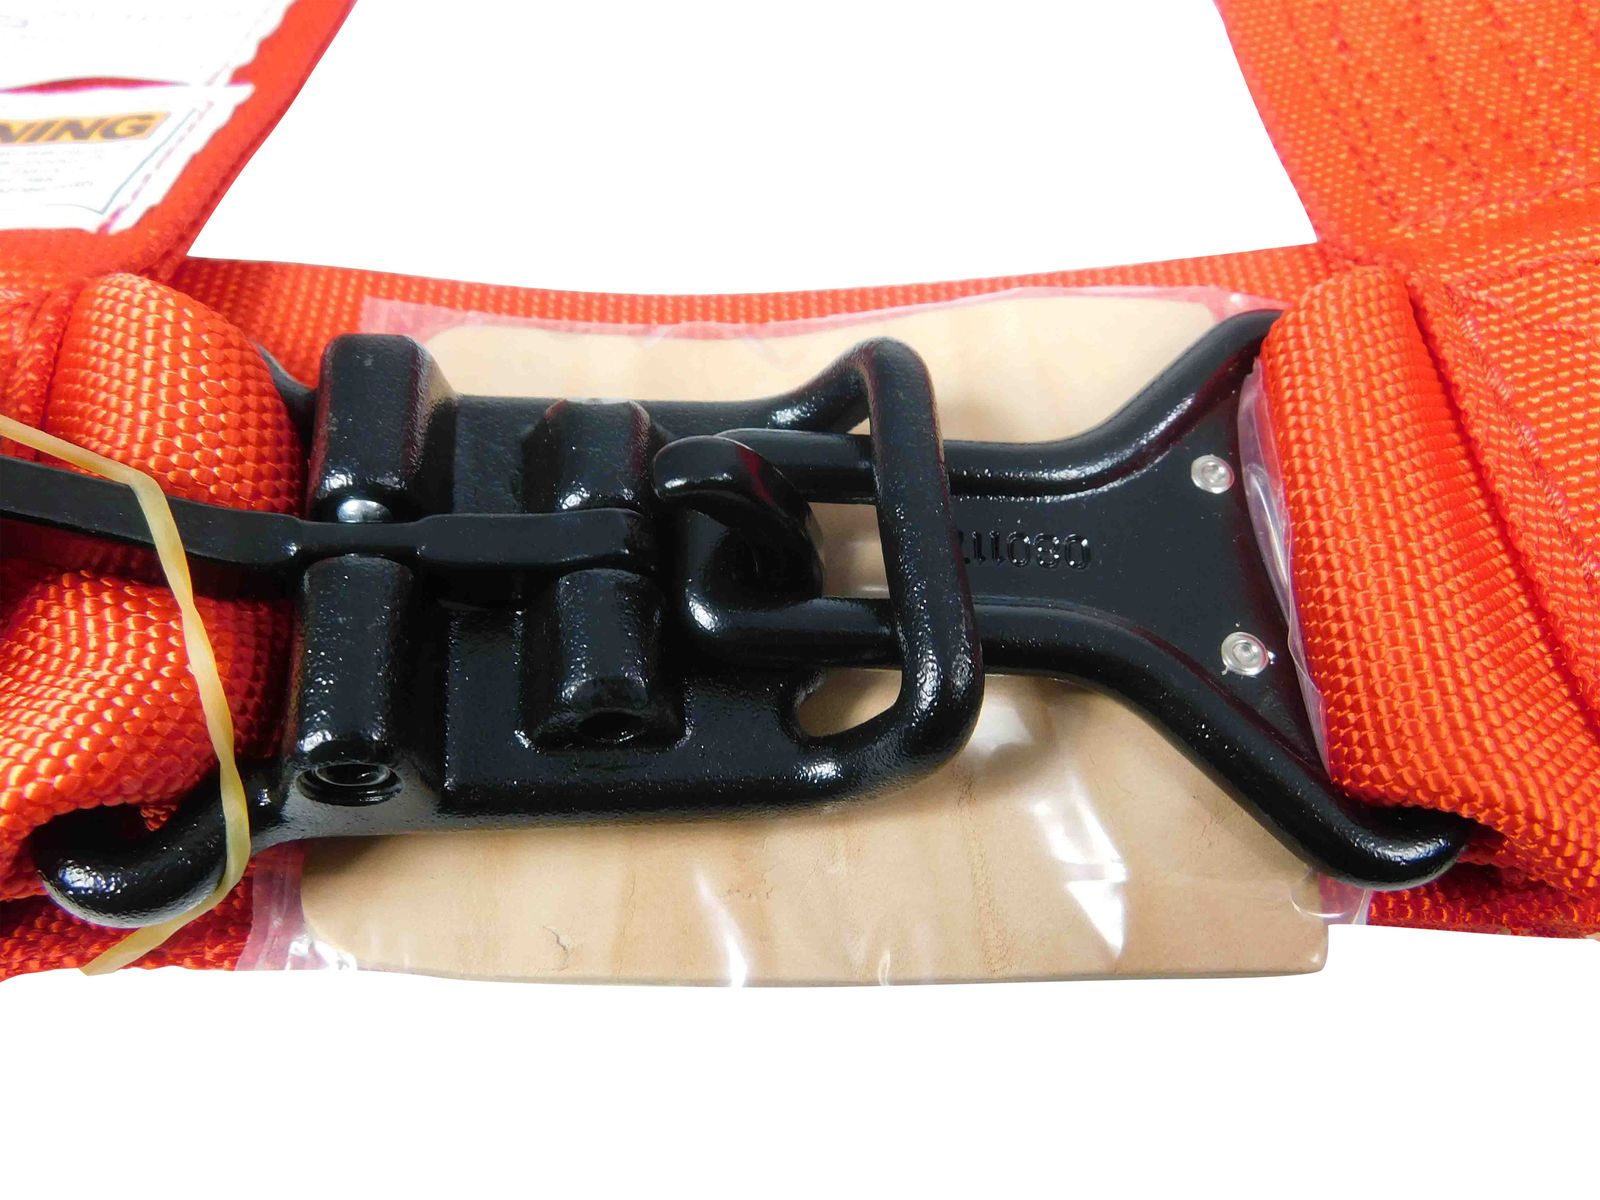 Pro-Armor-A114230RD-x2-P151100-4-Point-3inch-Harness-w-Override-Clip-Red-2-PACK-image-3